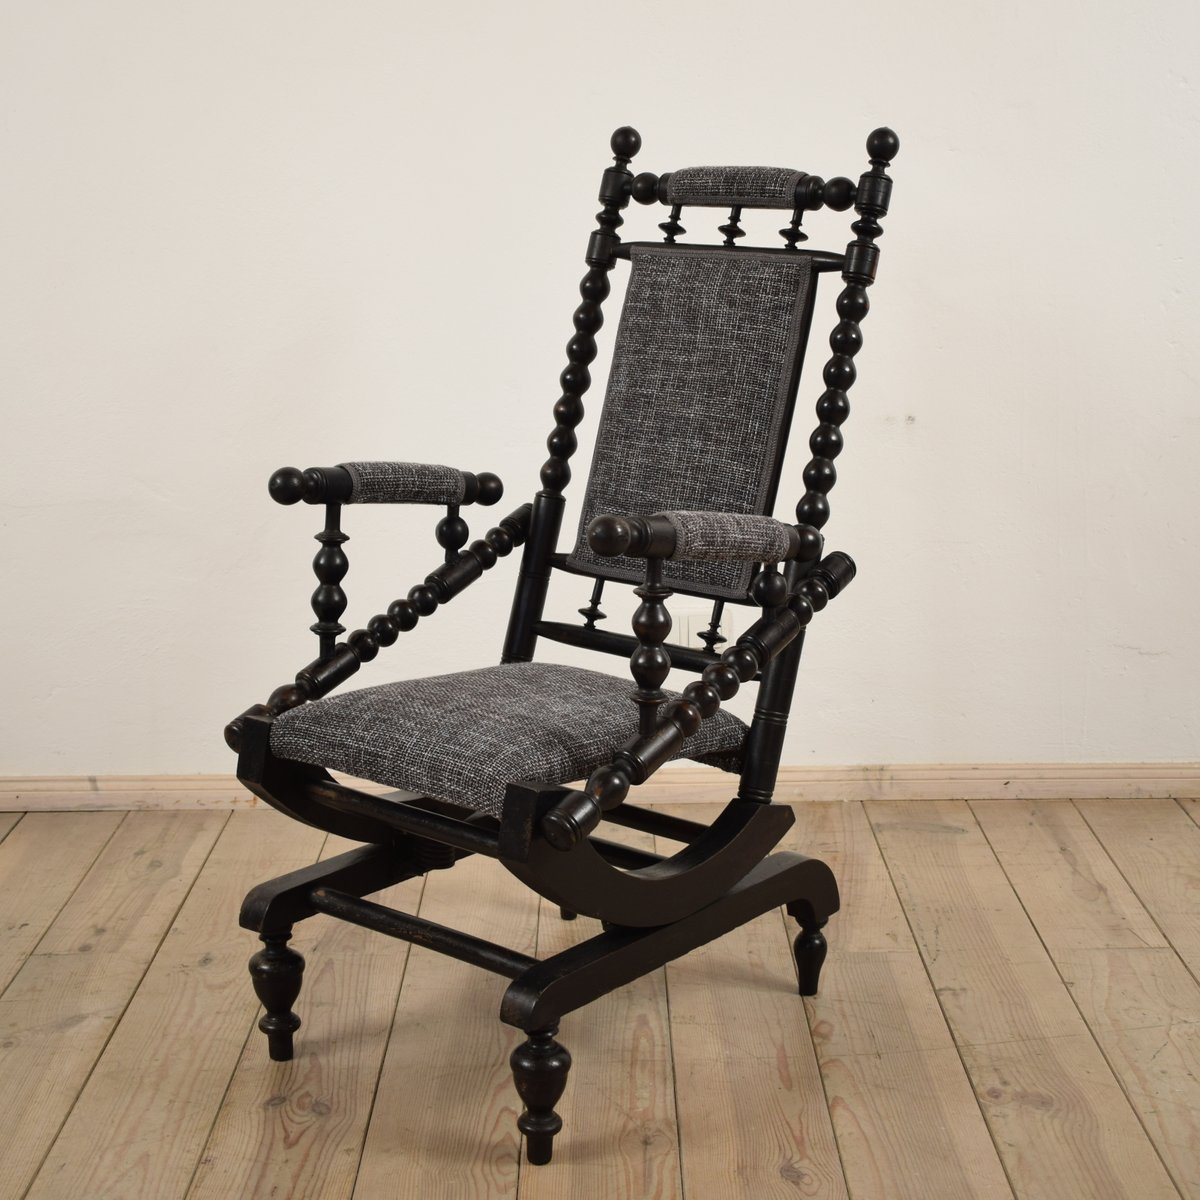 Antique American Rocking Chair - Antique American Rocking Chair For Sale At Pamono